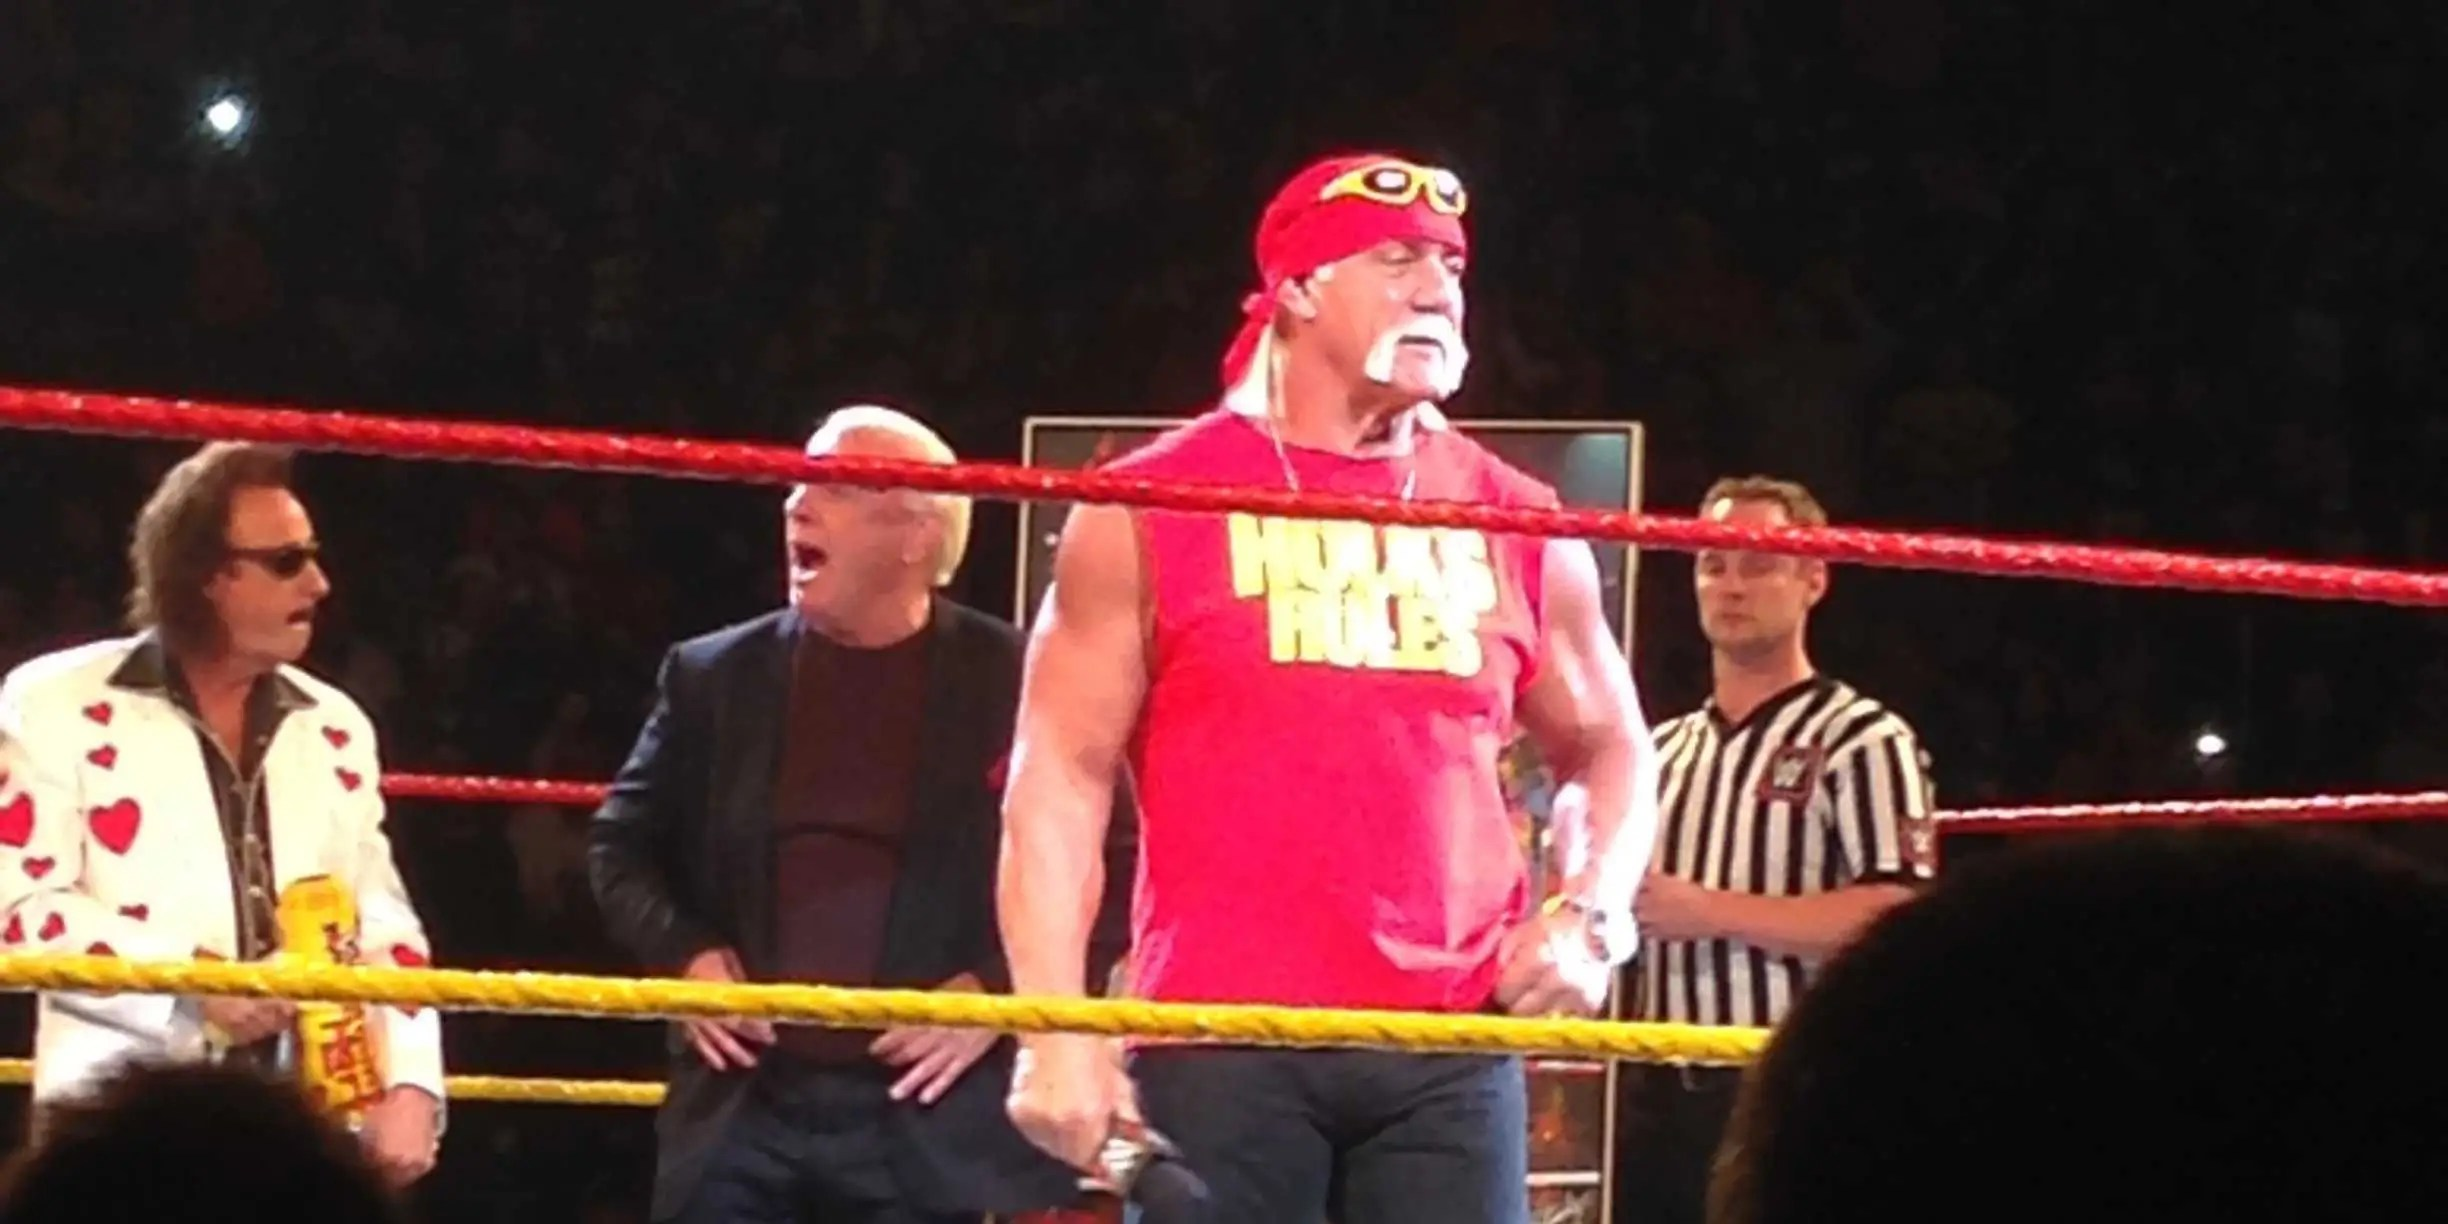 Wwe Hulk Hogan Wwe Put On Its Best Show Ever And It Wasn 39t Even